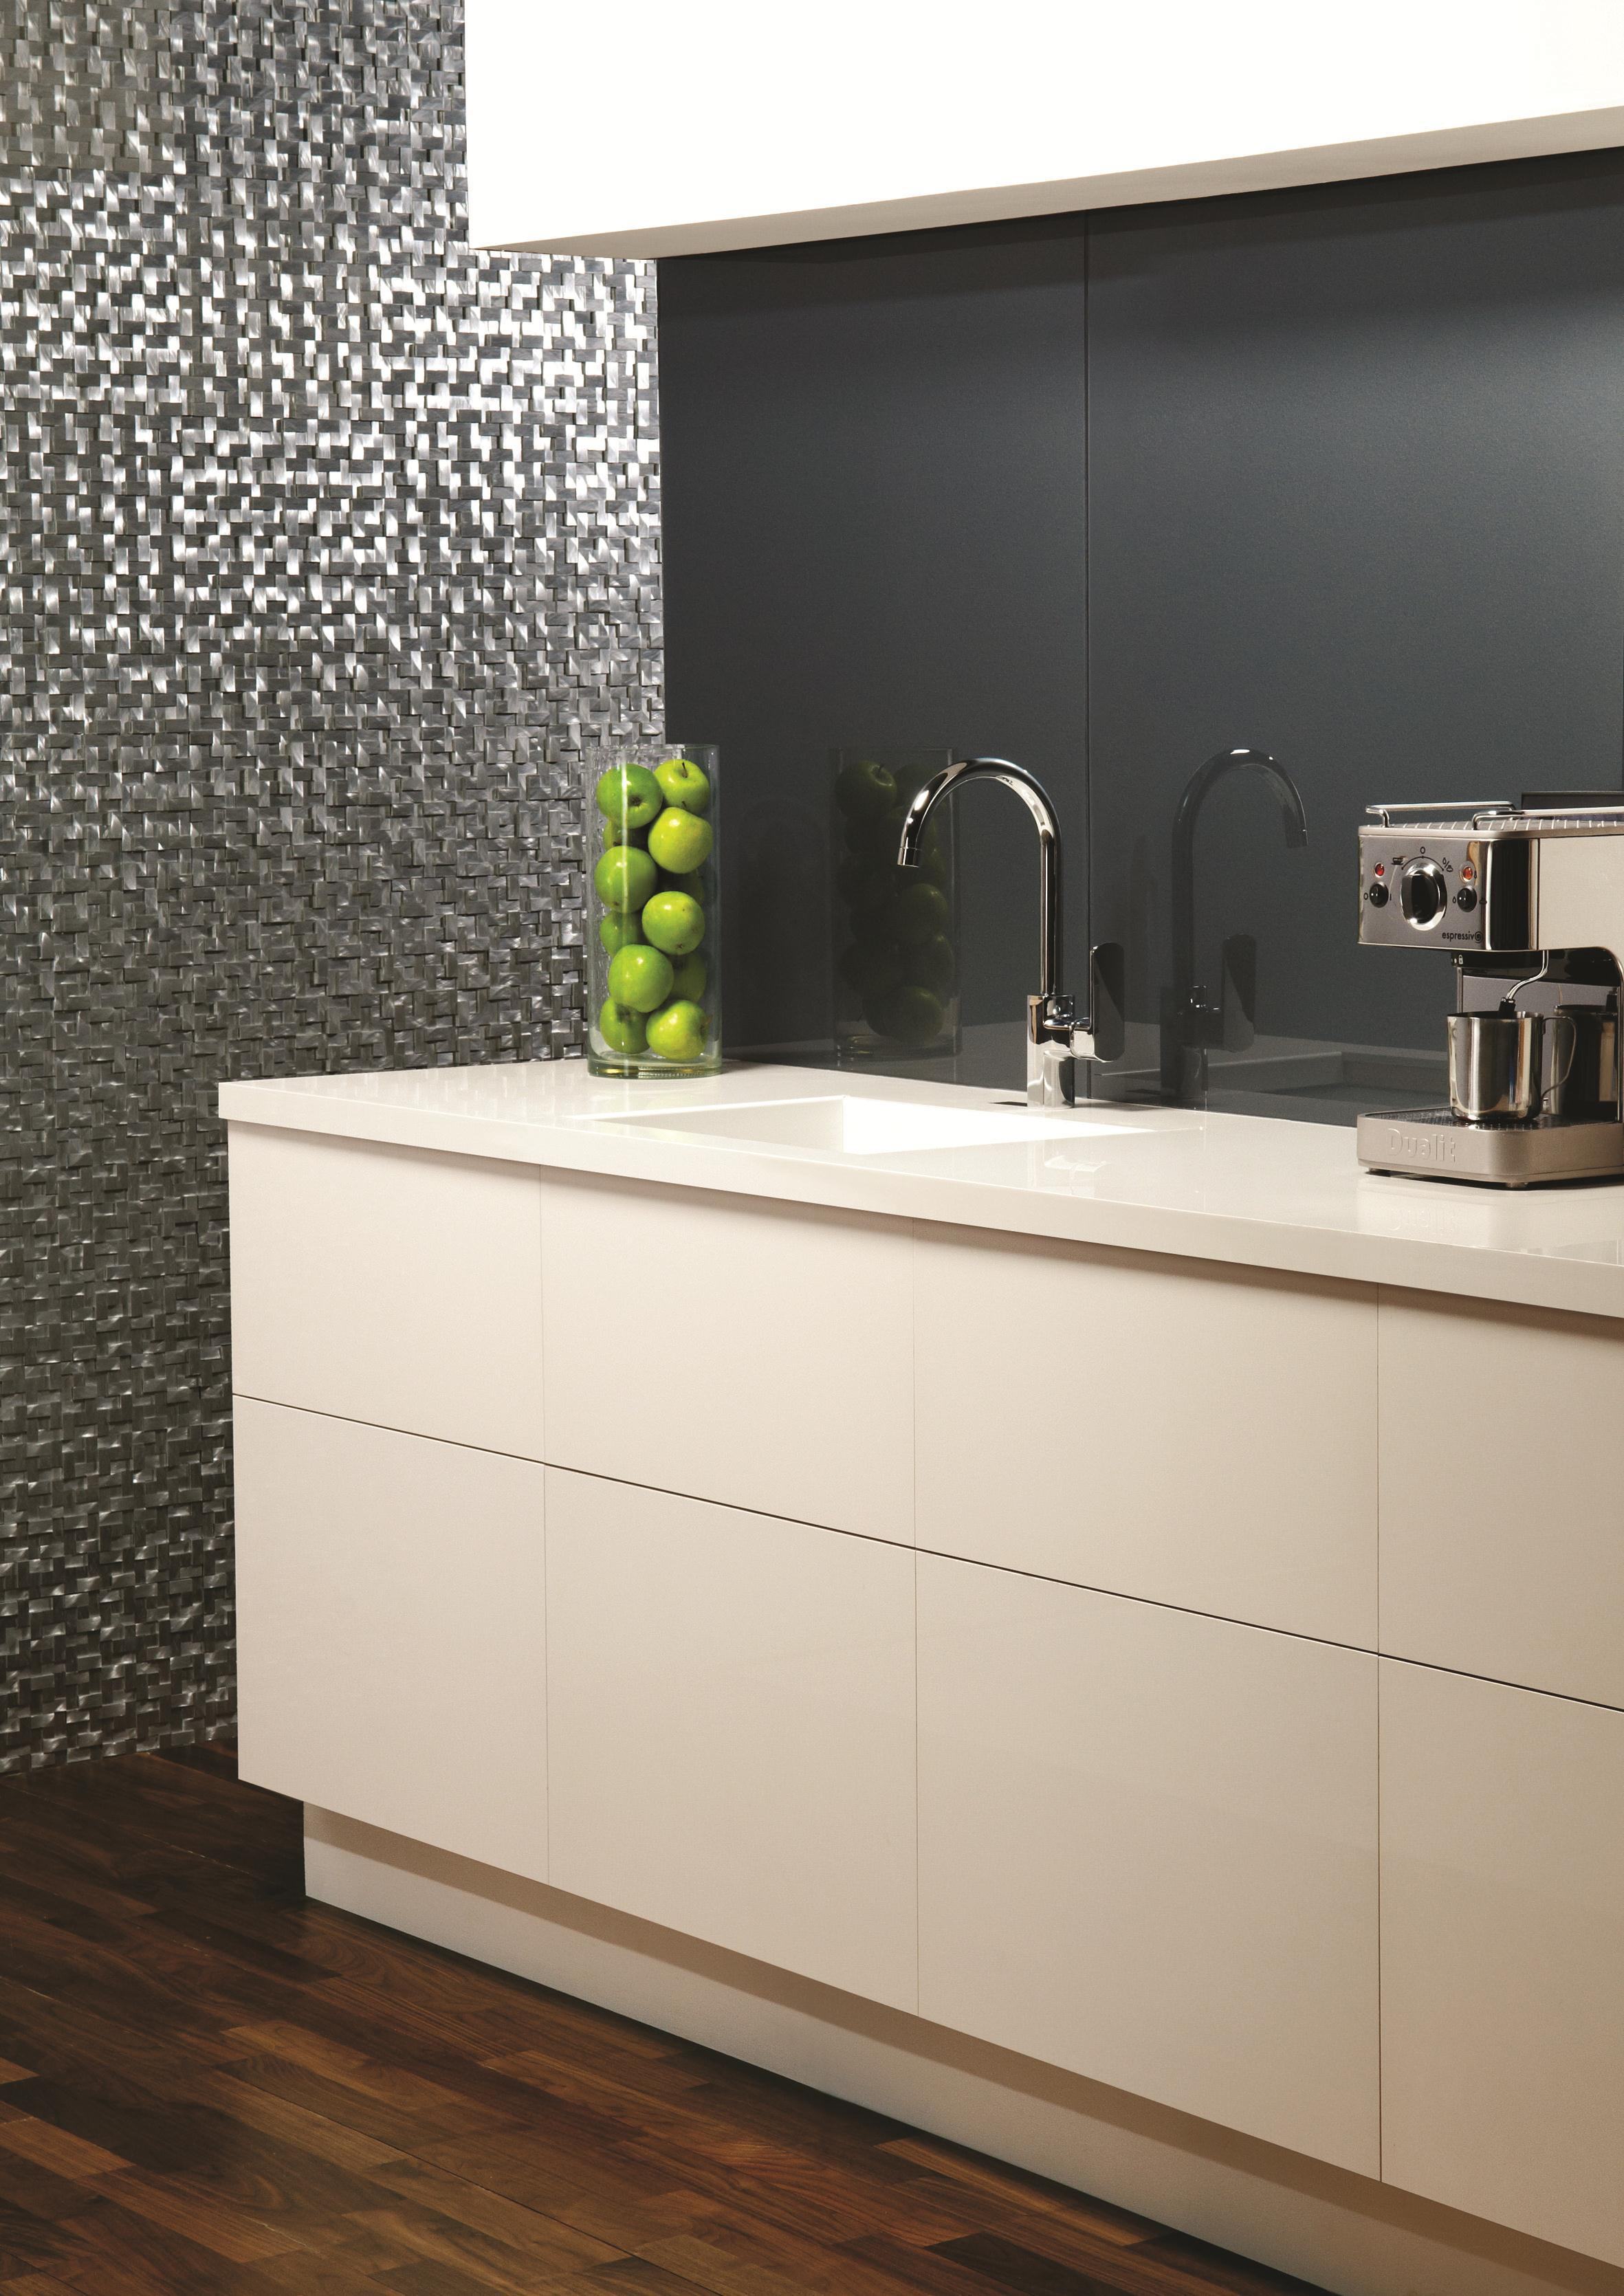 Kitchen Tiled Splashback Merle Metallic Splashback Tile